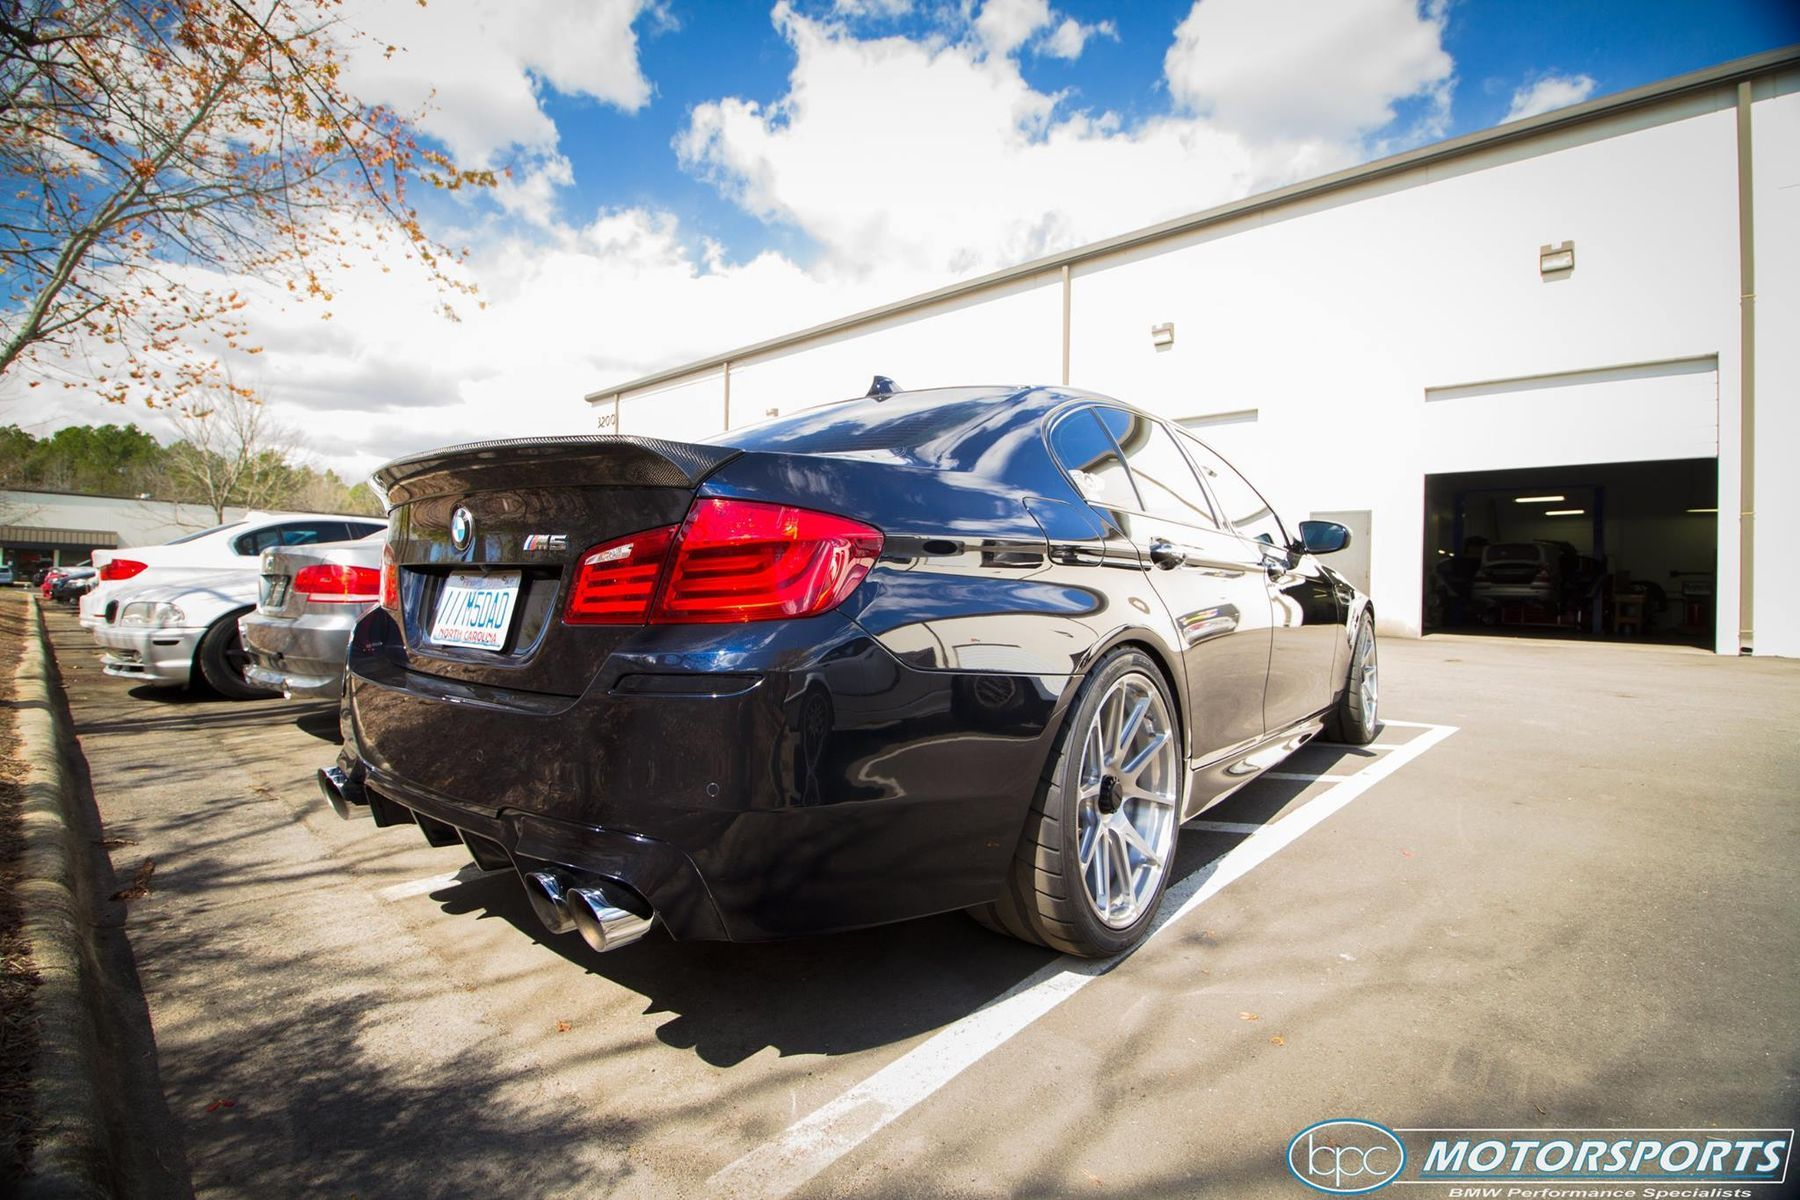 2016 BMW M5 | Ruben's Ronin Speed Industries BMW F10 M5 on Center Locking Forgeline One Piece Forged Monoblock GA1R Wheels